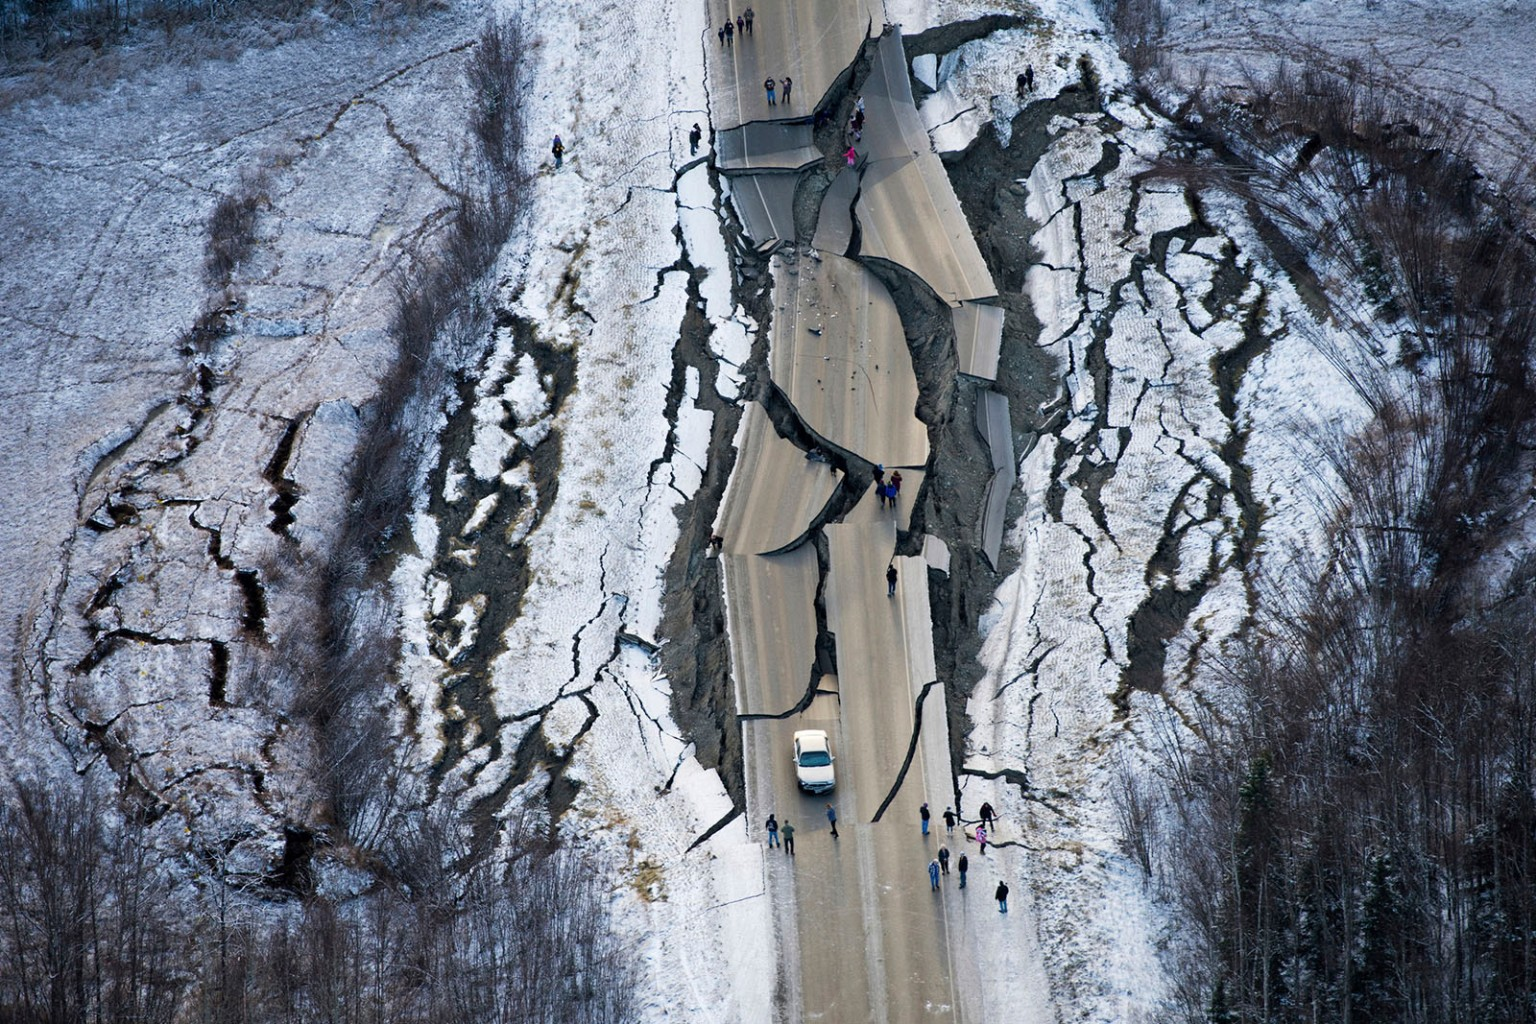 Cracks stop traffic on Vine Road, south of Wasilla, Alaska, after earthquakes on Nov. 30. Back-to-back quakes measuring 7.0 and 5.7 shattered highways and rocked buildings in Anchorage and the surrounding area, sending people running into the streets and briefly triggering a tsunami warning for islands and coastal areas south of the city. Marc Lester/Anchorage Daily News via AP